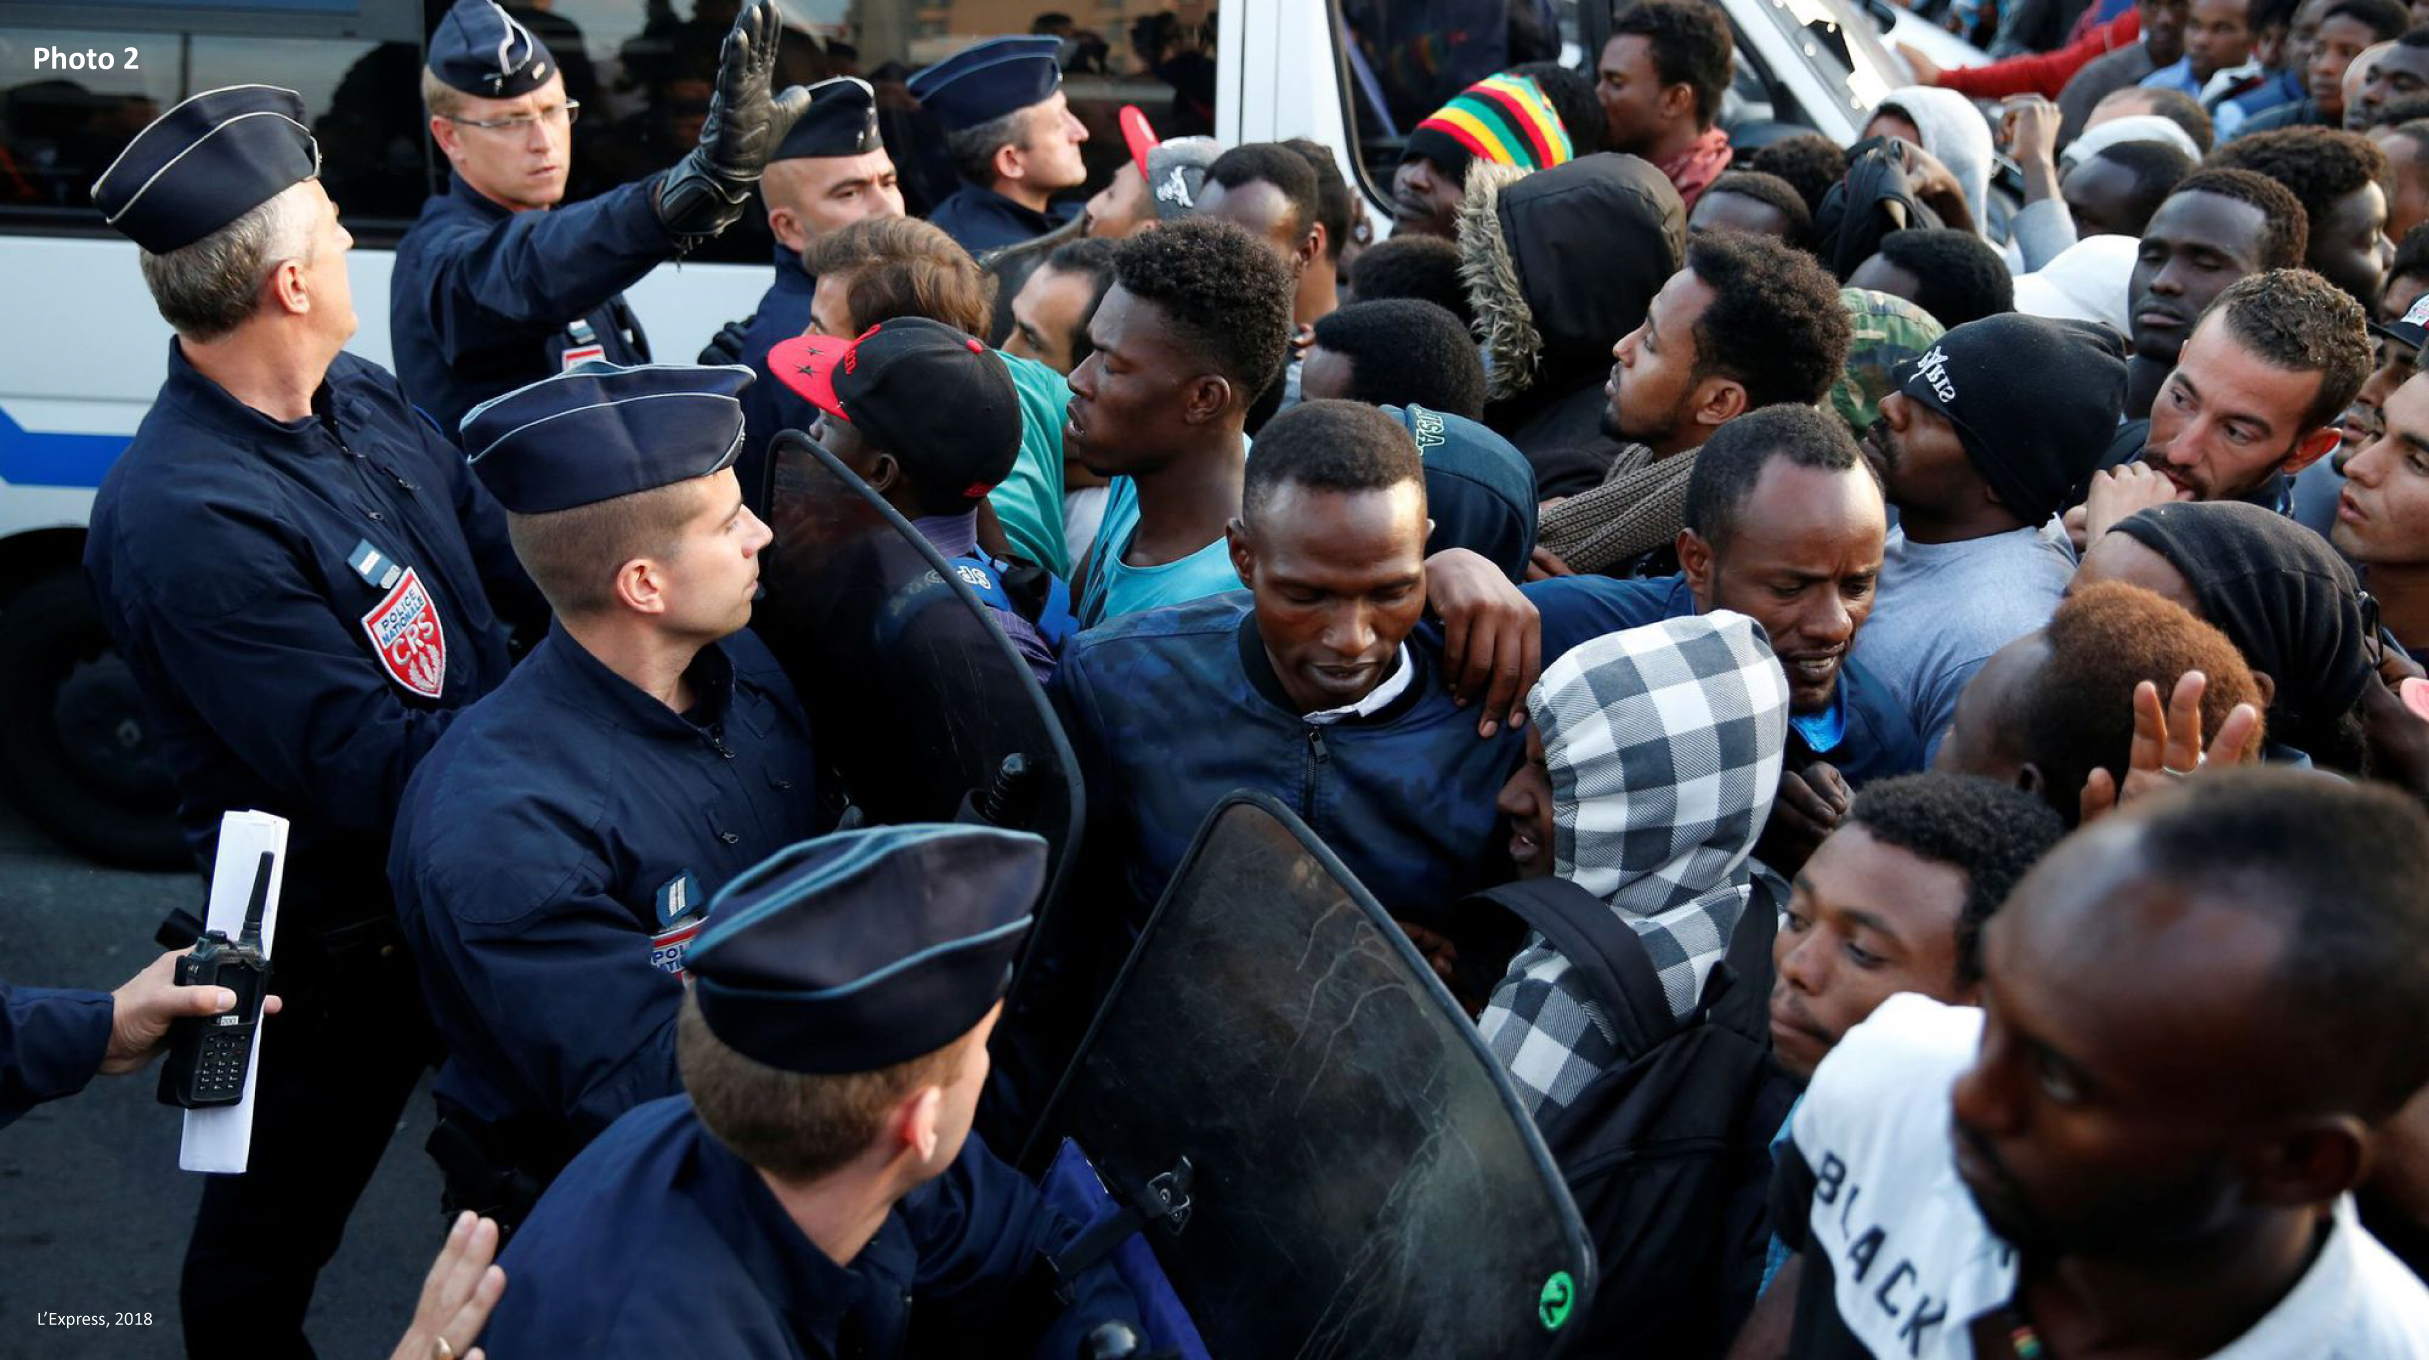 ventdouxprod 2019 nicolas barbier evacuation refugee camp paris mistreatment of refugees by the french state